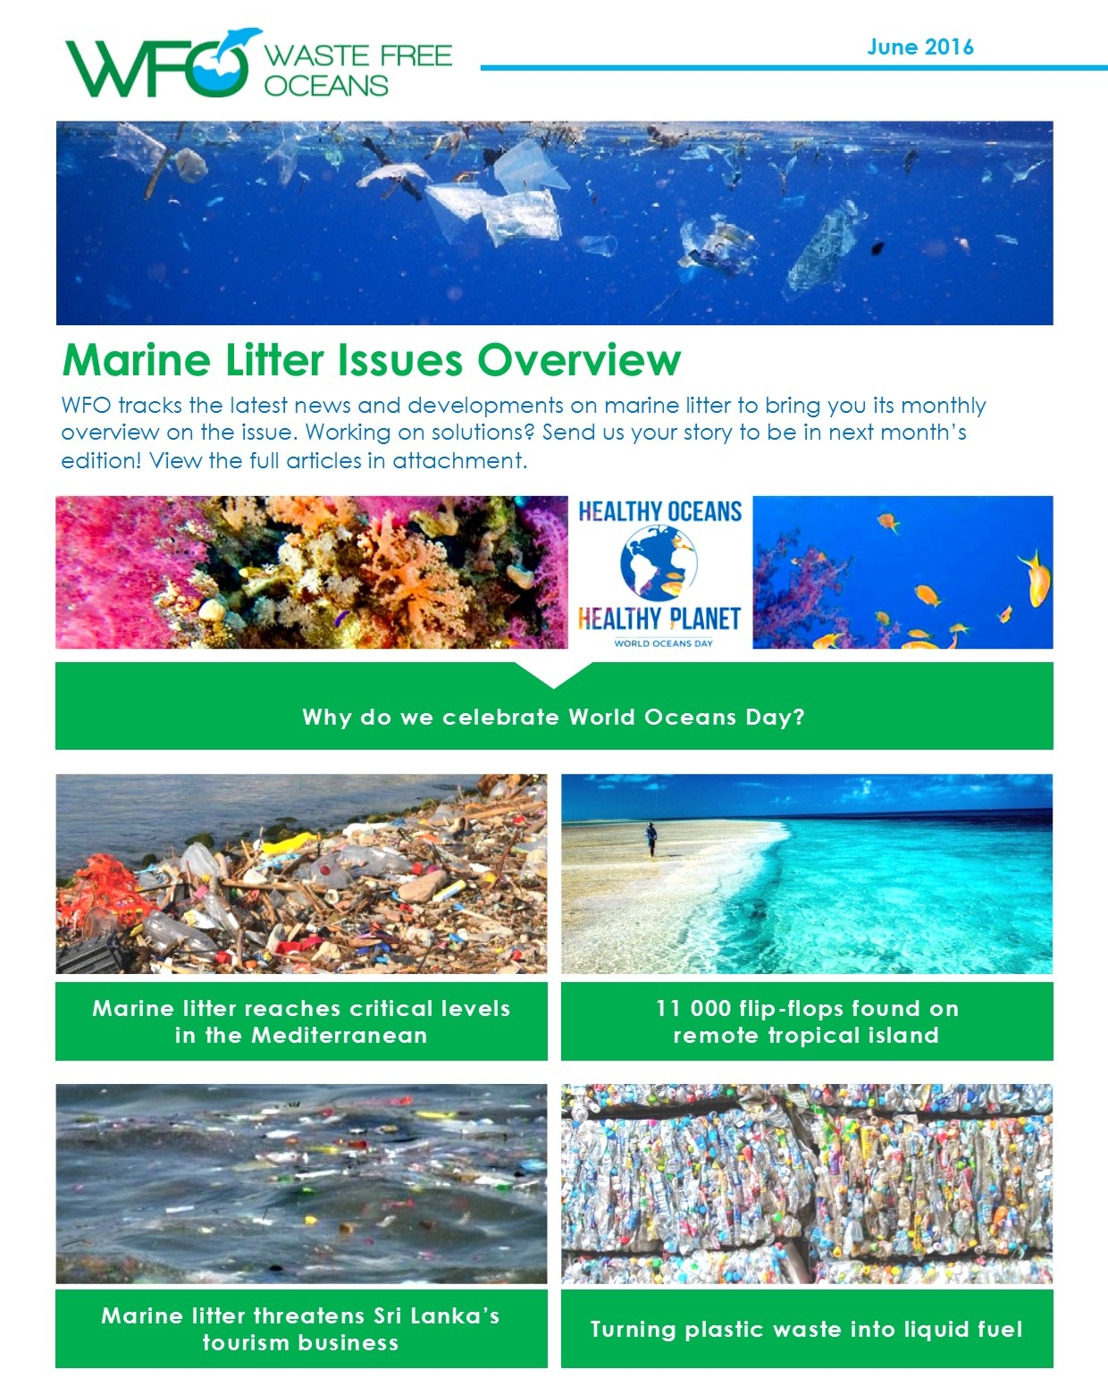 WFO Marine Litter Issues Overview - June 2016